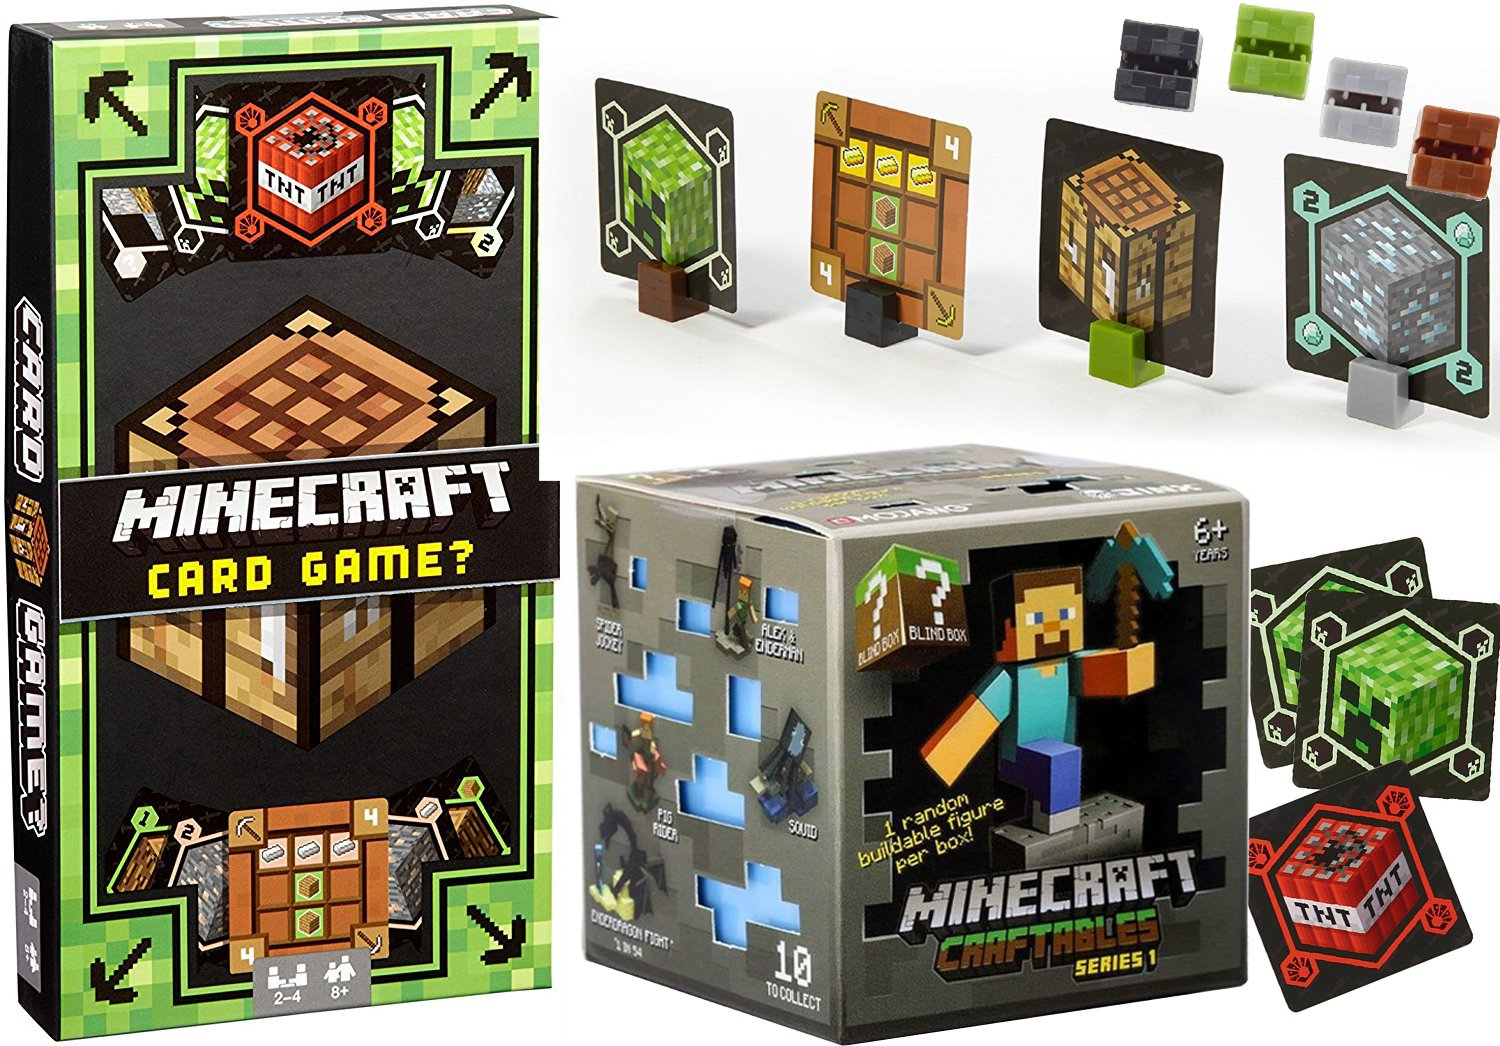 Craftable Blind Box Block Buildable Figure Collectible Video Game Gear Bundle AYB Products Build! Minecraft Card Game Mine Craft